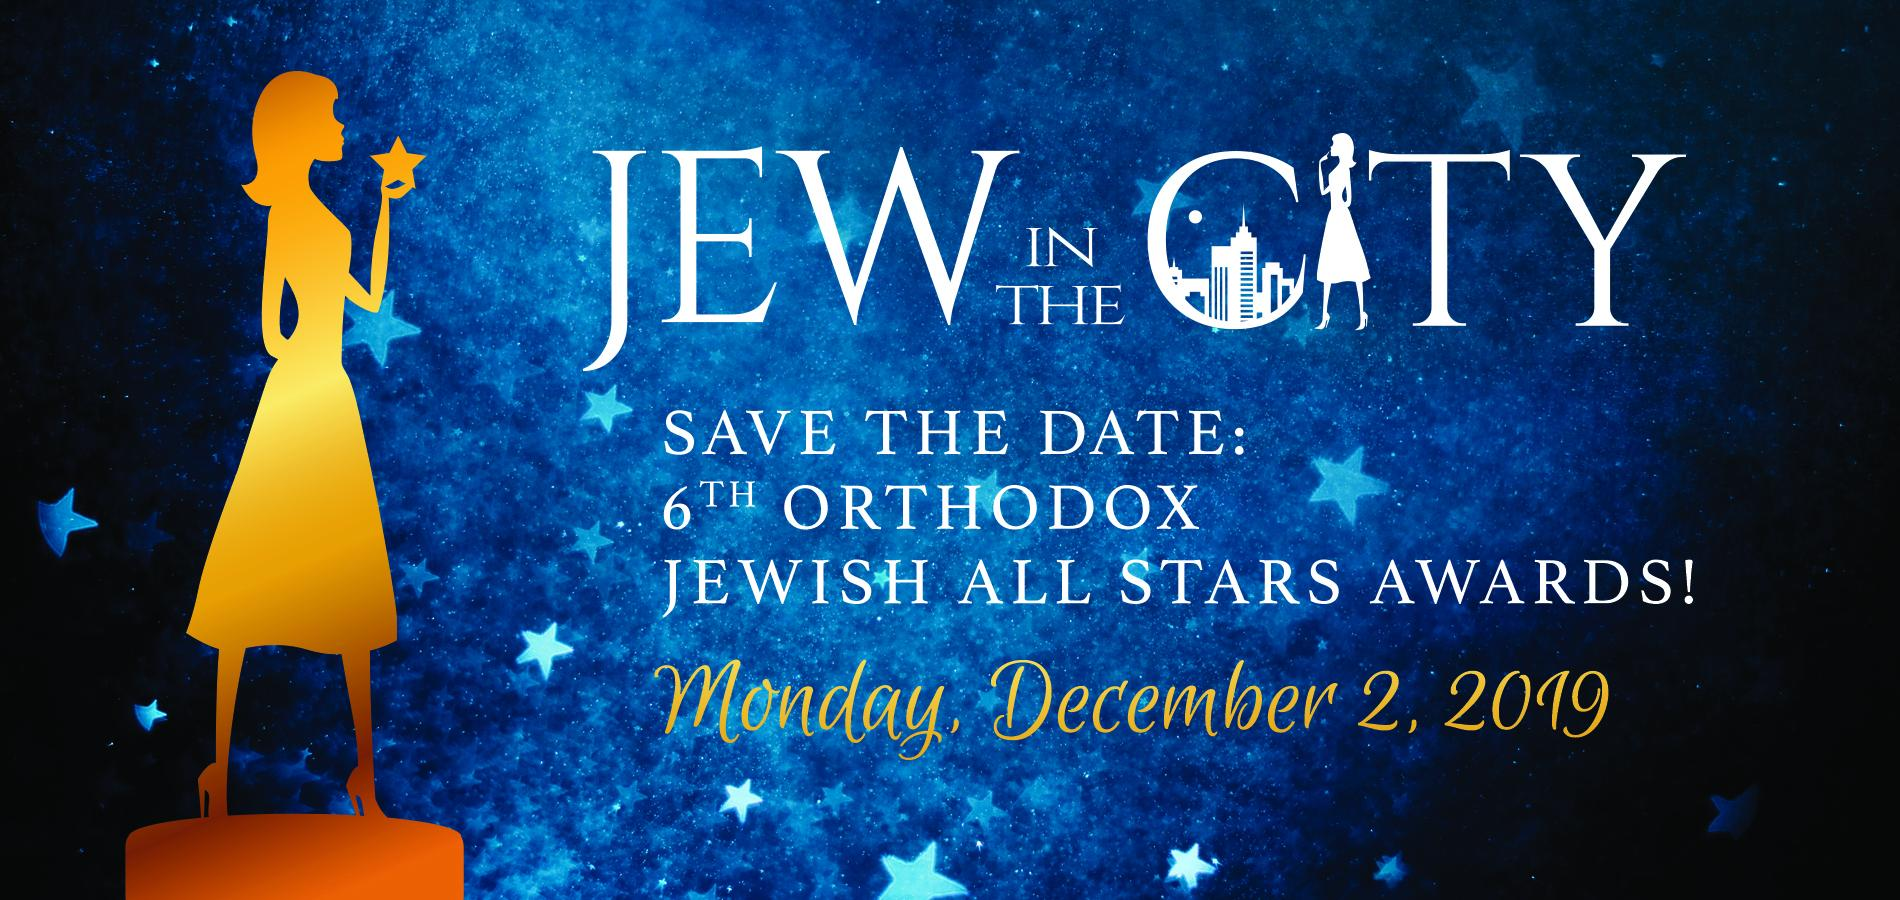 Save The Date For The 6th Orthodox Jewish All Stars Event!